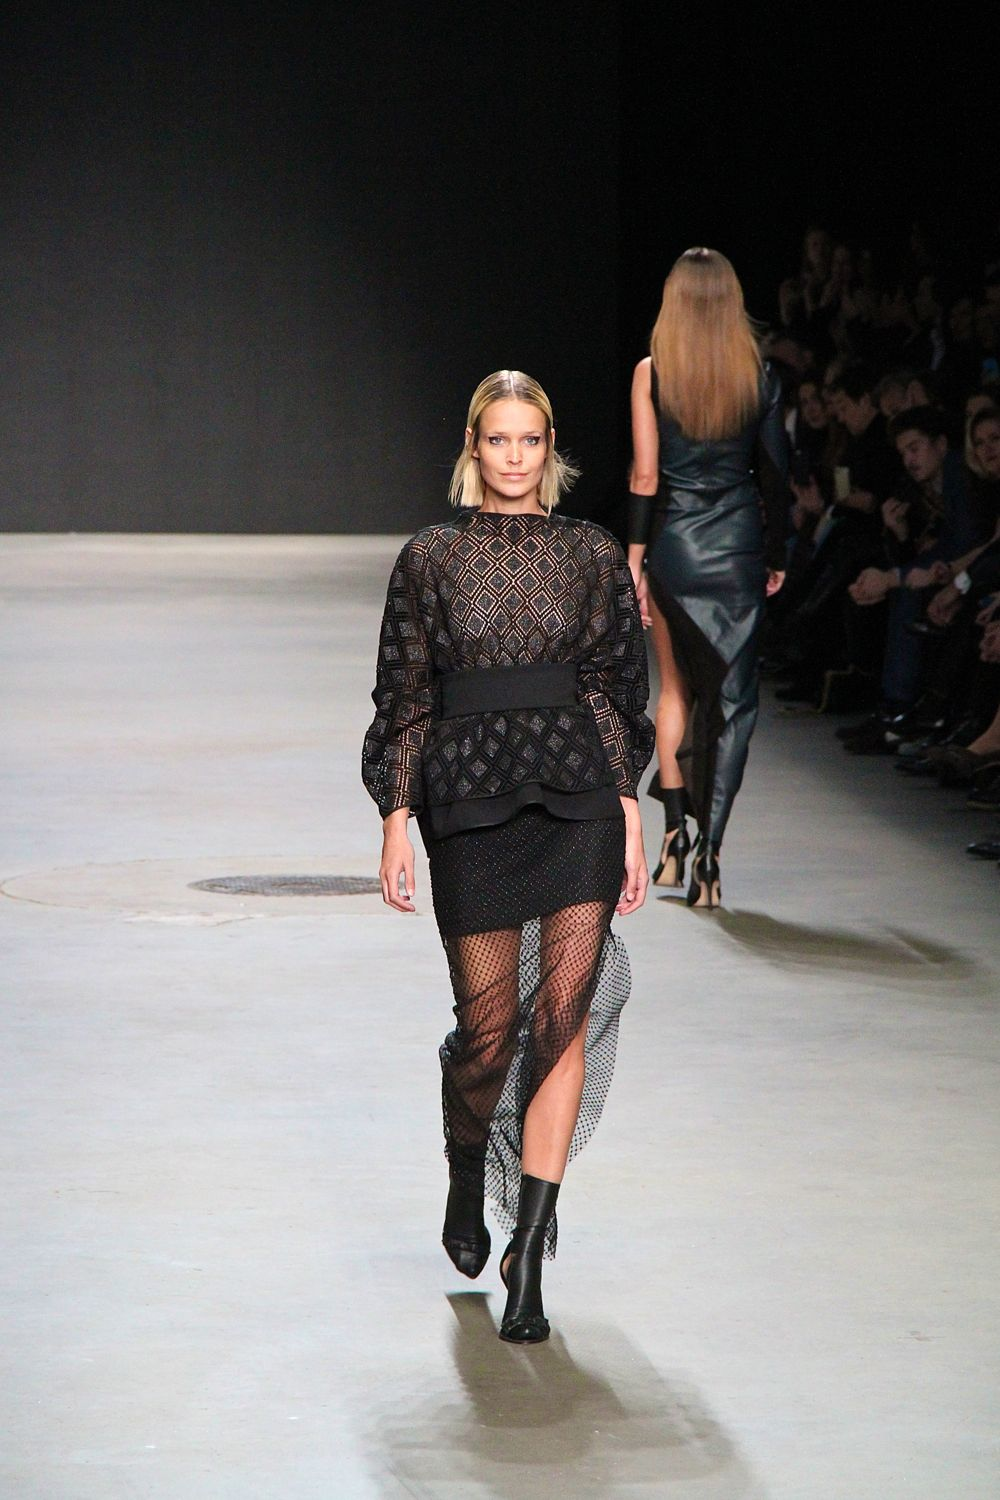 Tony Cohen Fall Winter 2015 2016 AFW Style Barista lace